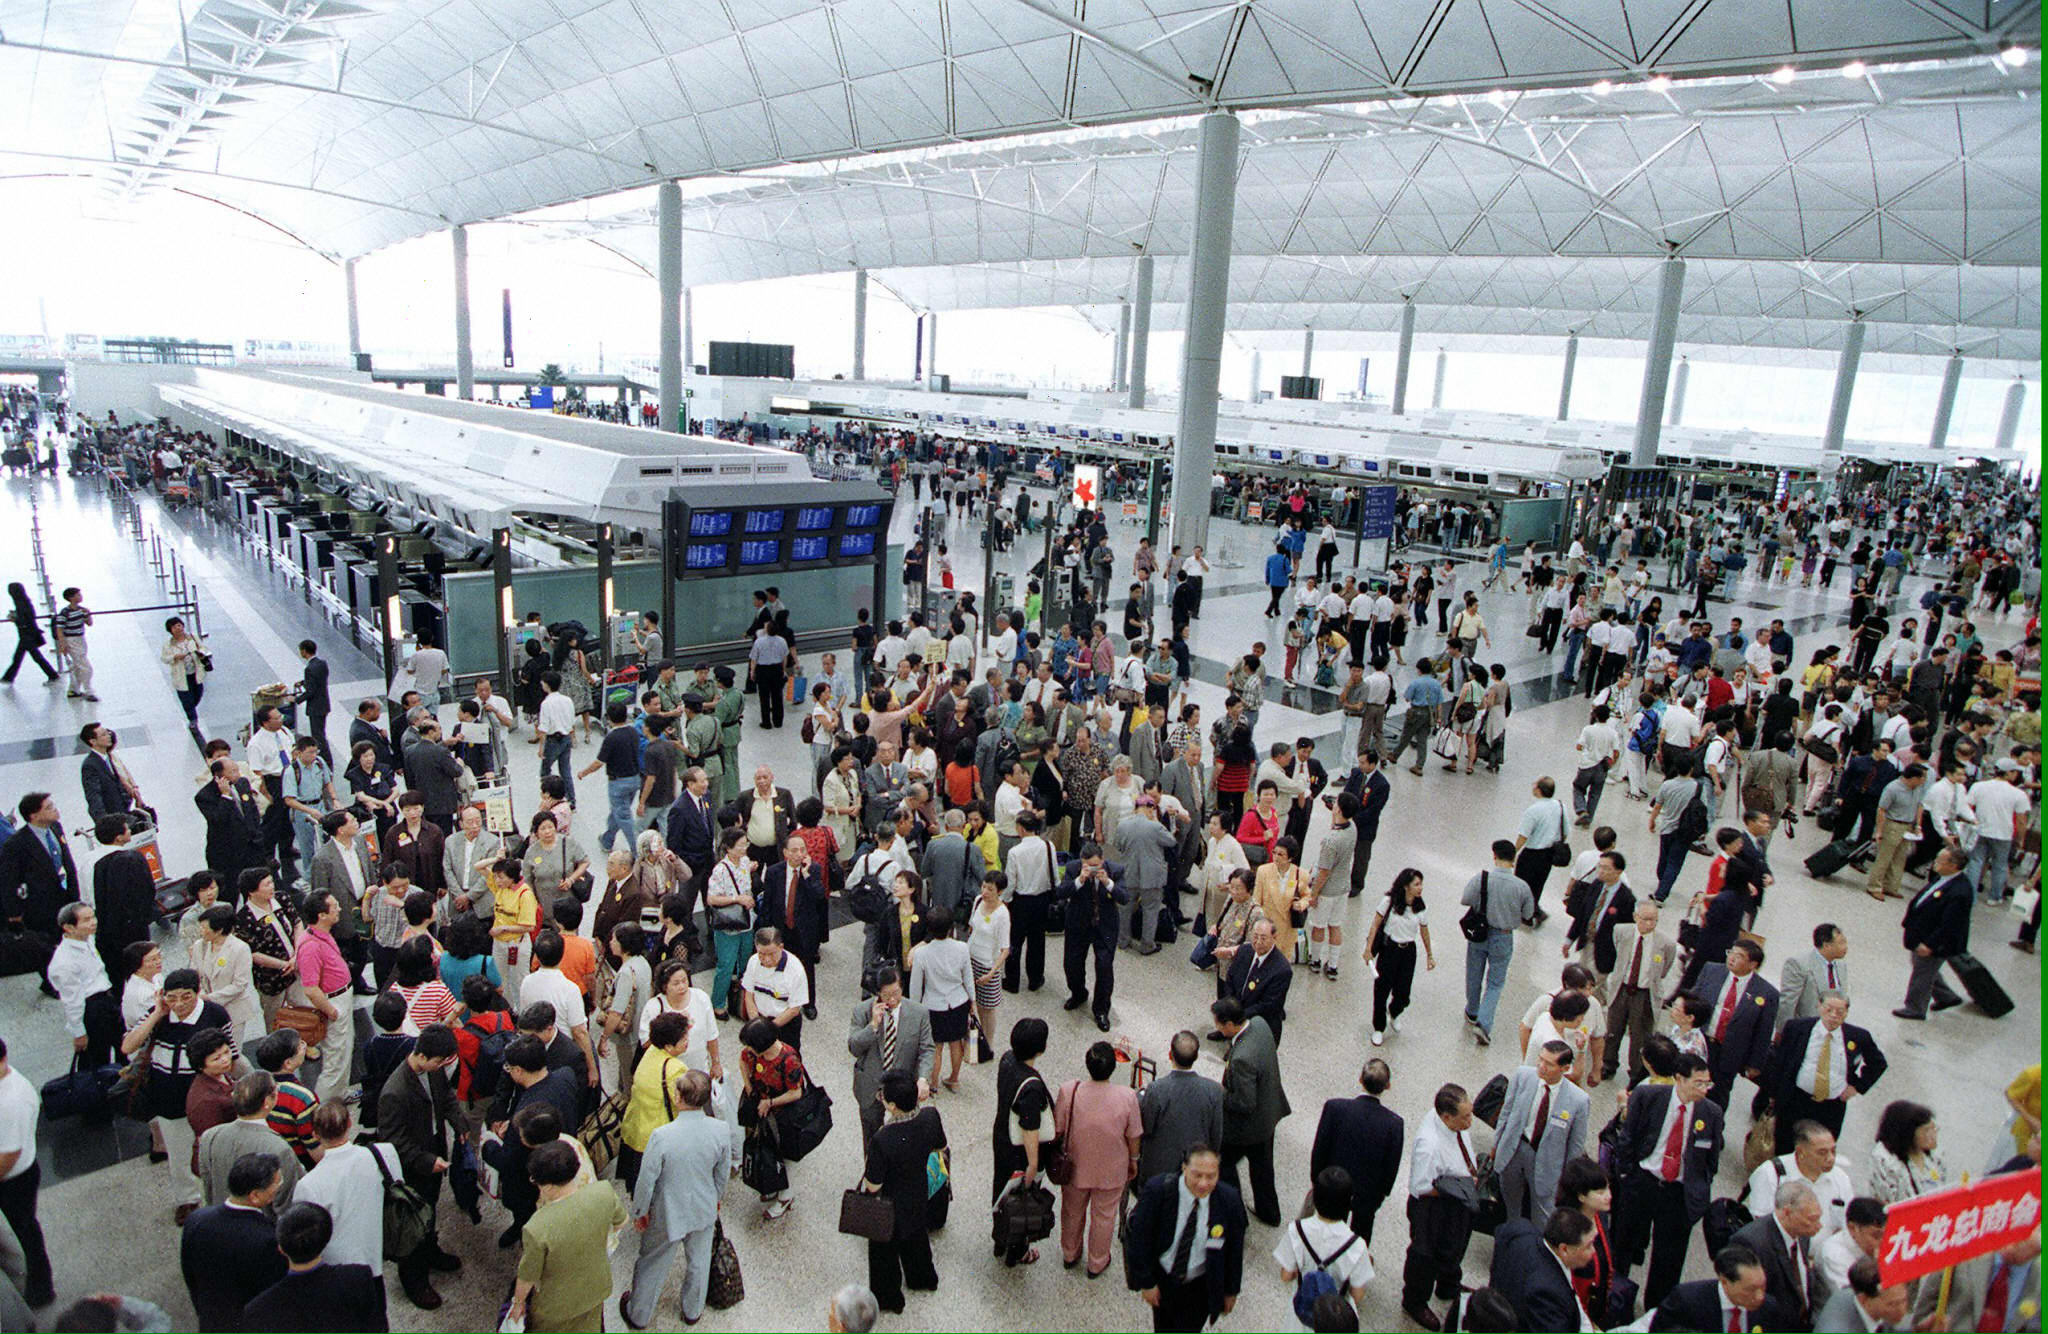 People crowd near the check-in counters at the departure level of the state-of-the-art Hong Kong International airport on July 6, 1998, the airport's first day of commercial operations. Designed as a showpiece of the new, post-handover Hong Kong, the airport was plagued by several months of technical glitches but recovered to become a facility that is consistently ranked among the world's best.